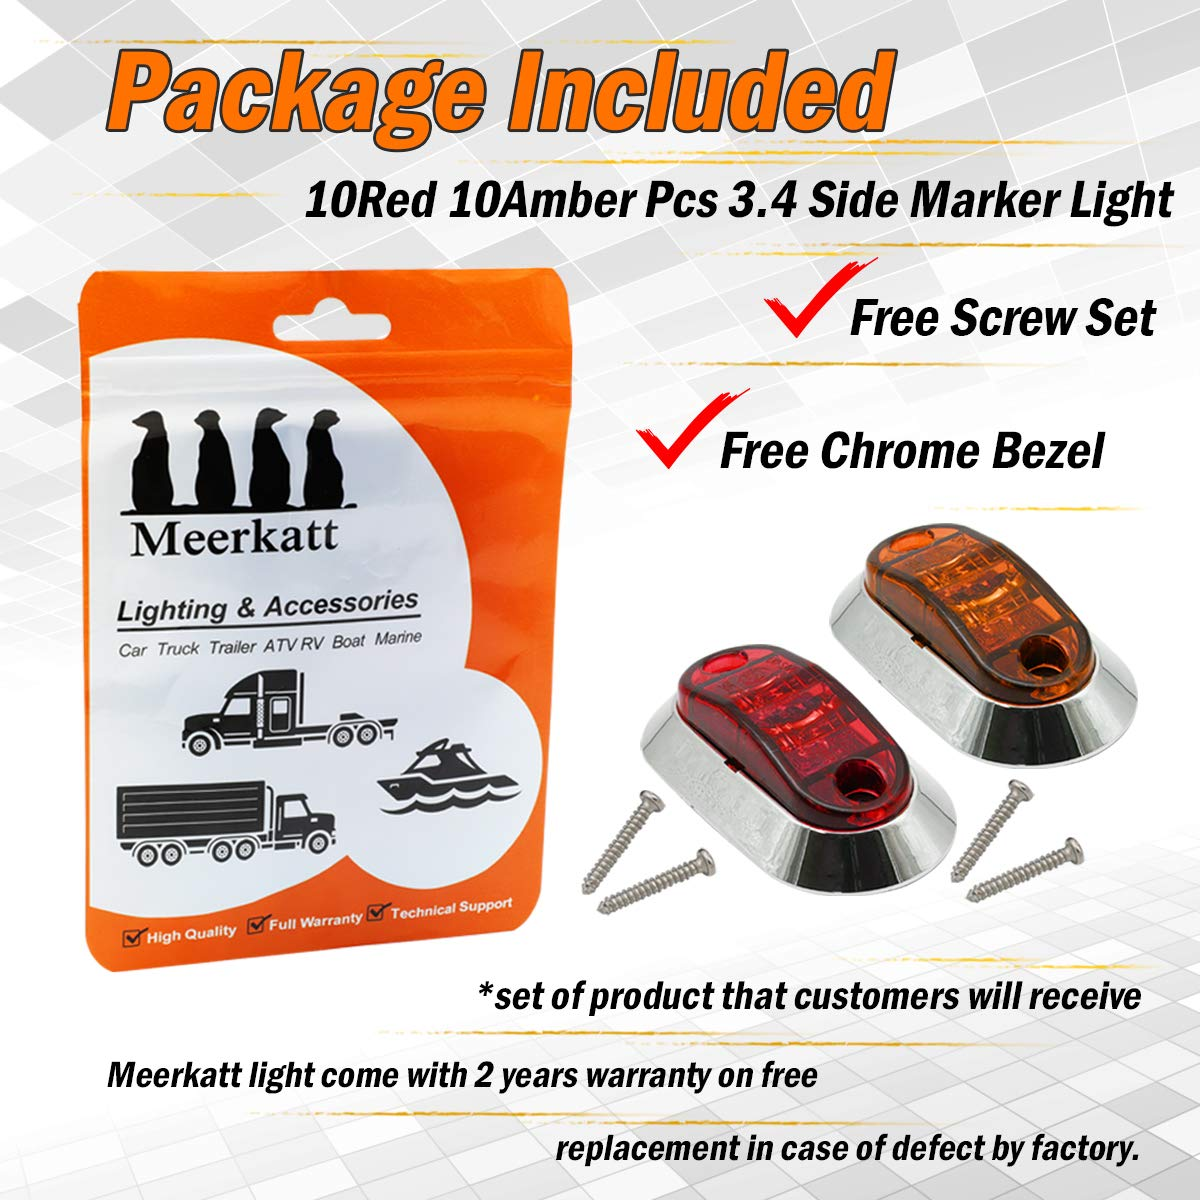 """2.5/"""" Inch White LED Oval Side Marker Clearance Lamp Flash Lights 2 Diodes Surface Mount Waterproof Trailer Lorry Camper Van Pickup Truck Jeep Car 10-30V DC w//Chrome Bezel LM-CHS Pack of 20 Meerkatt"""